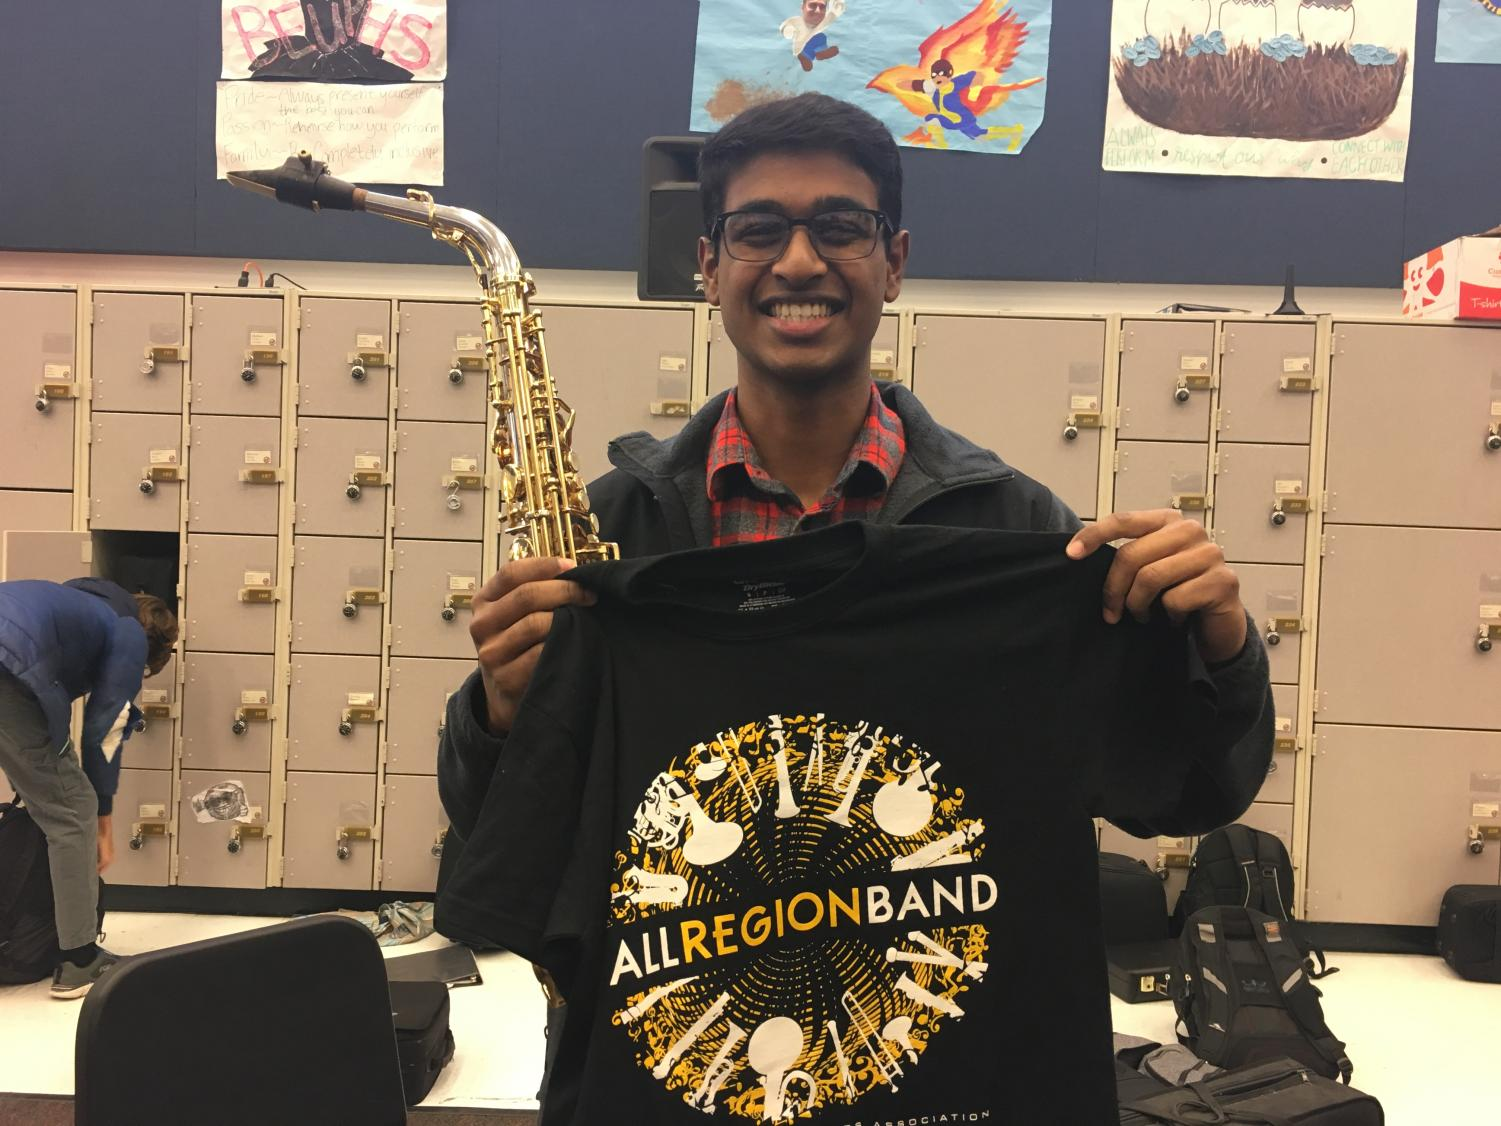 Ani Sreeram '19 holds up his All Region Band shirt.